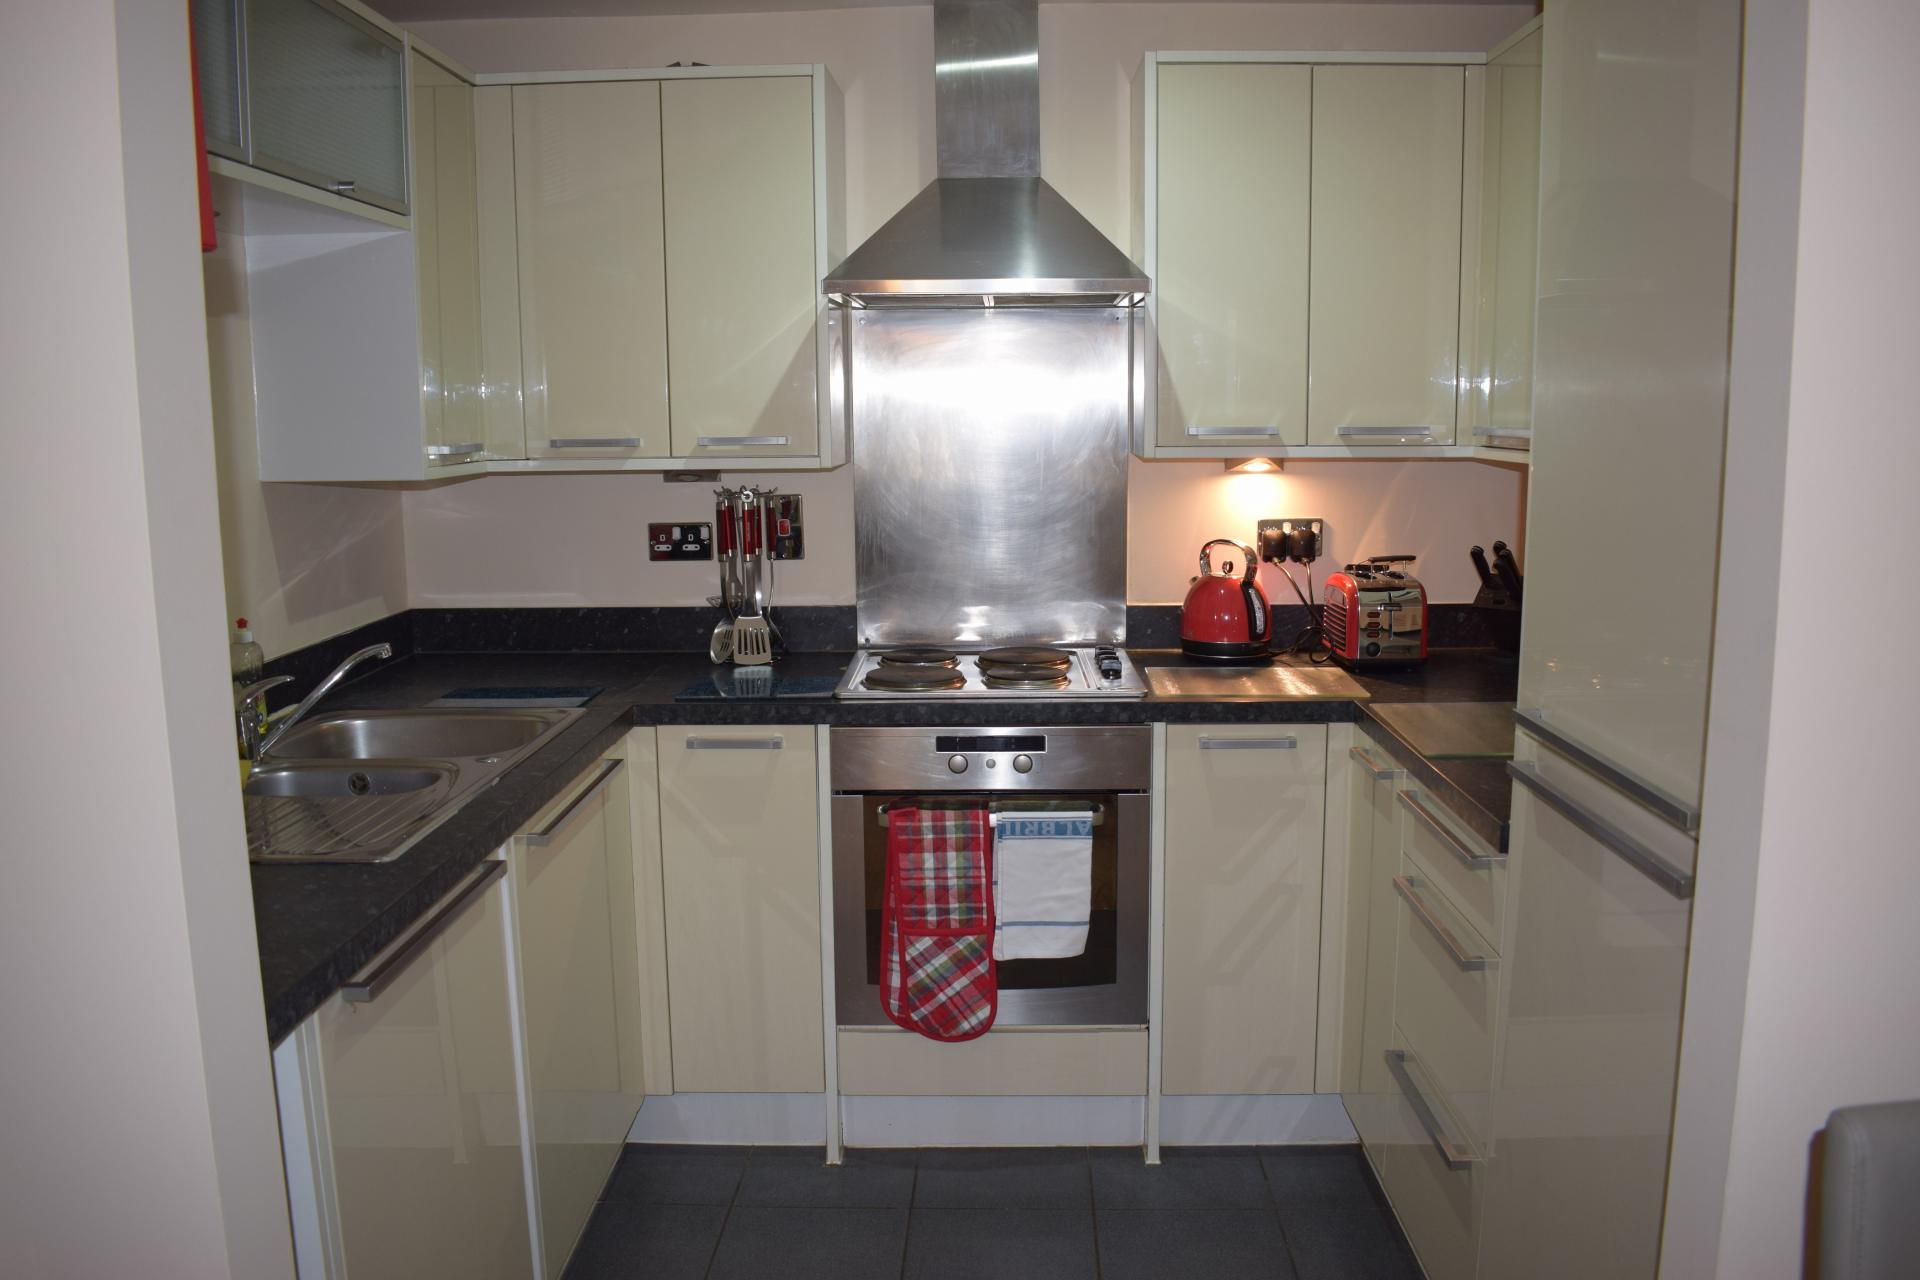 Kitchen at Queensgate Apartments, Centre, Watford